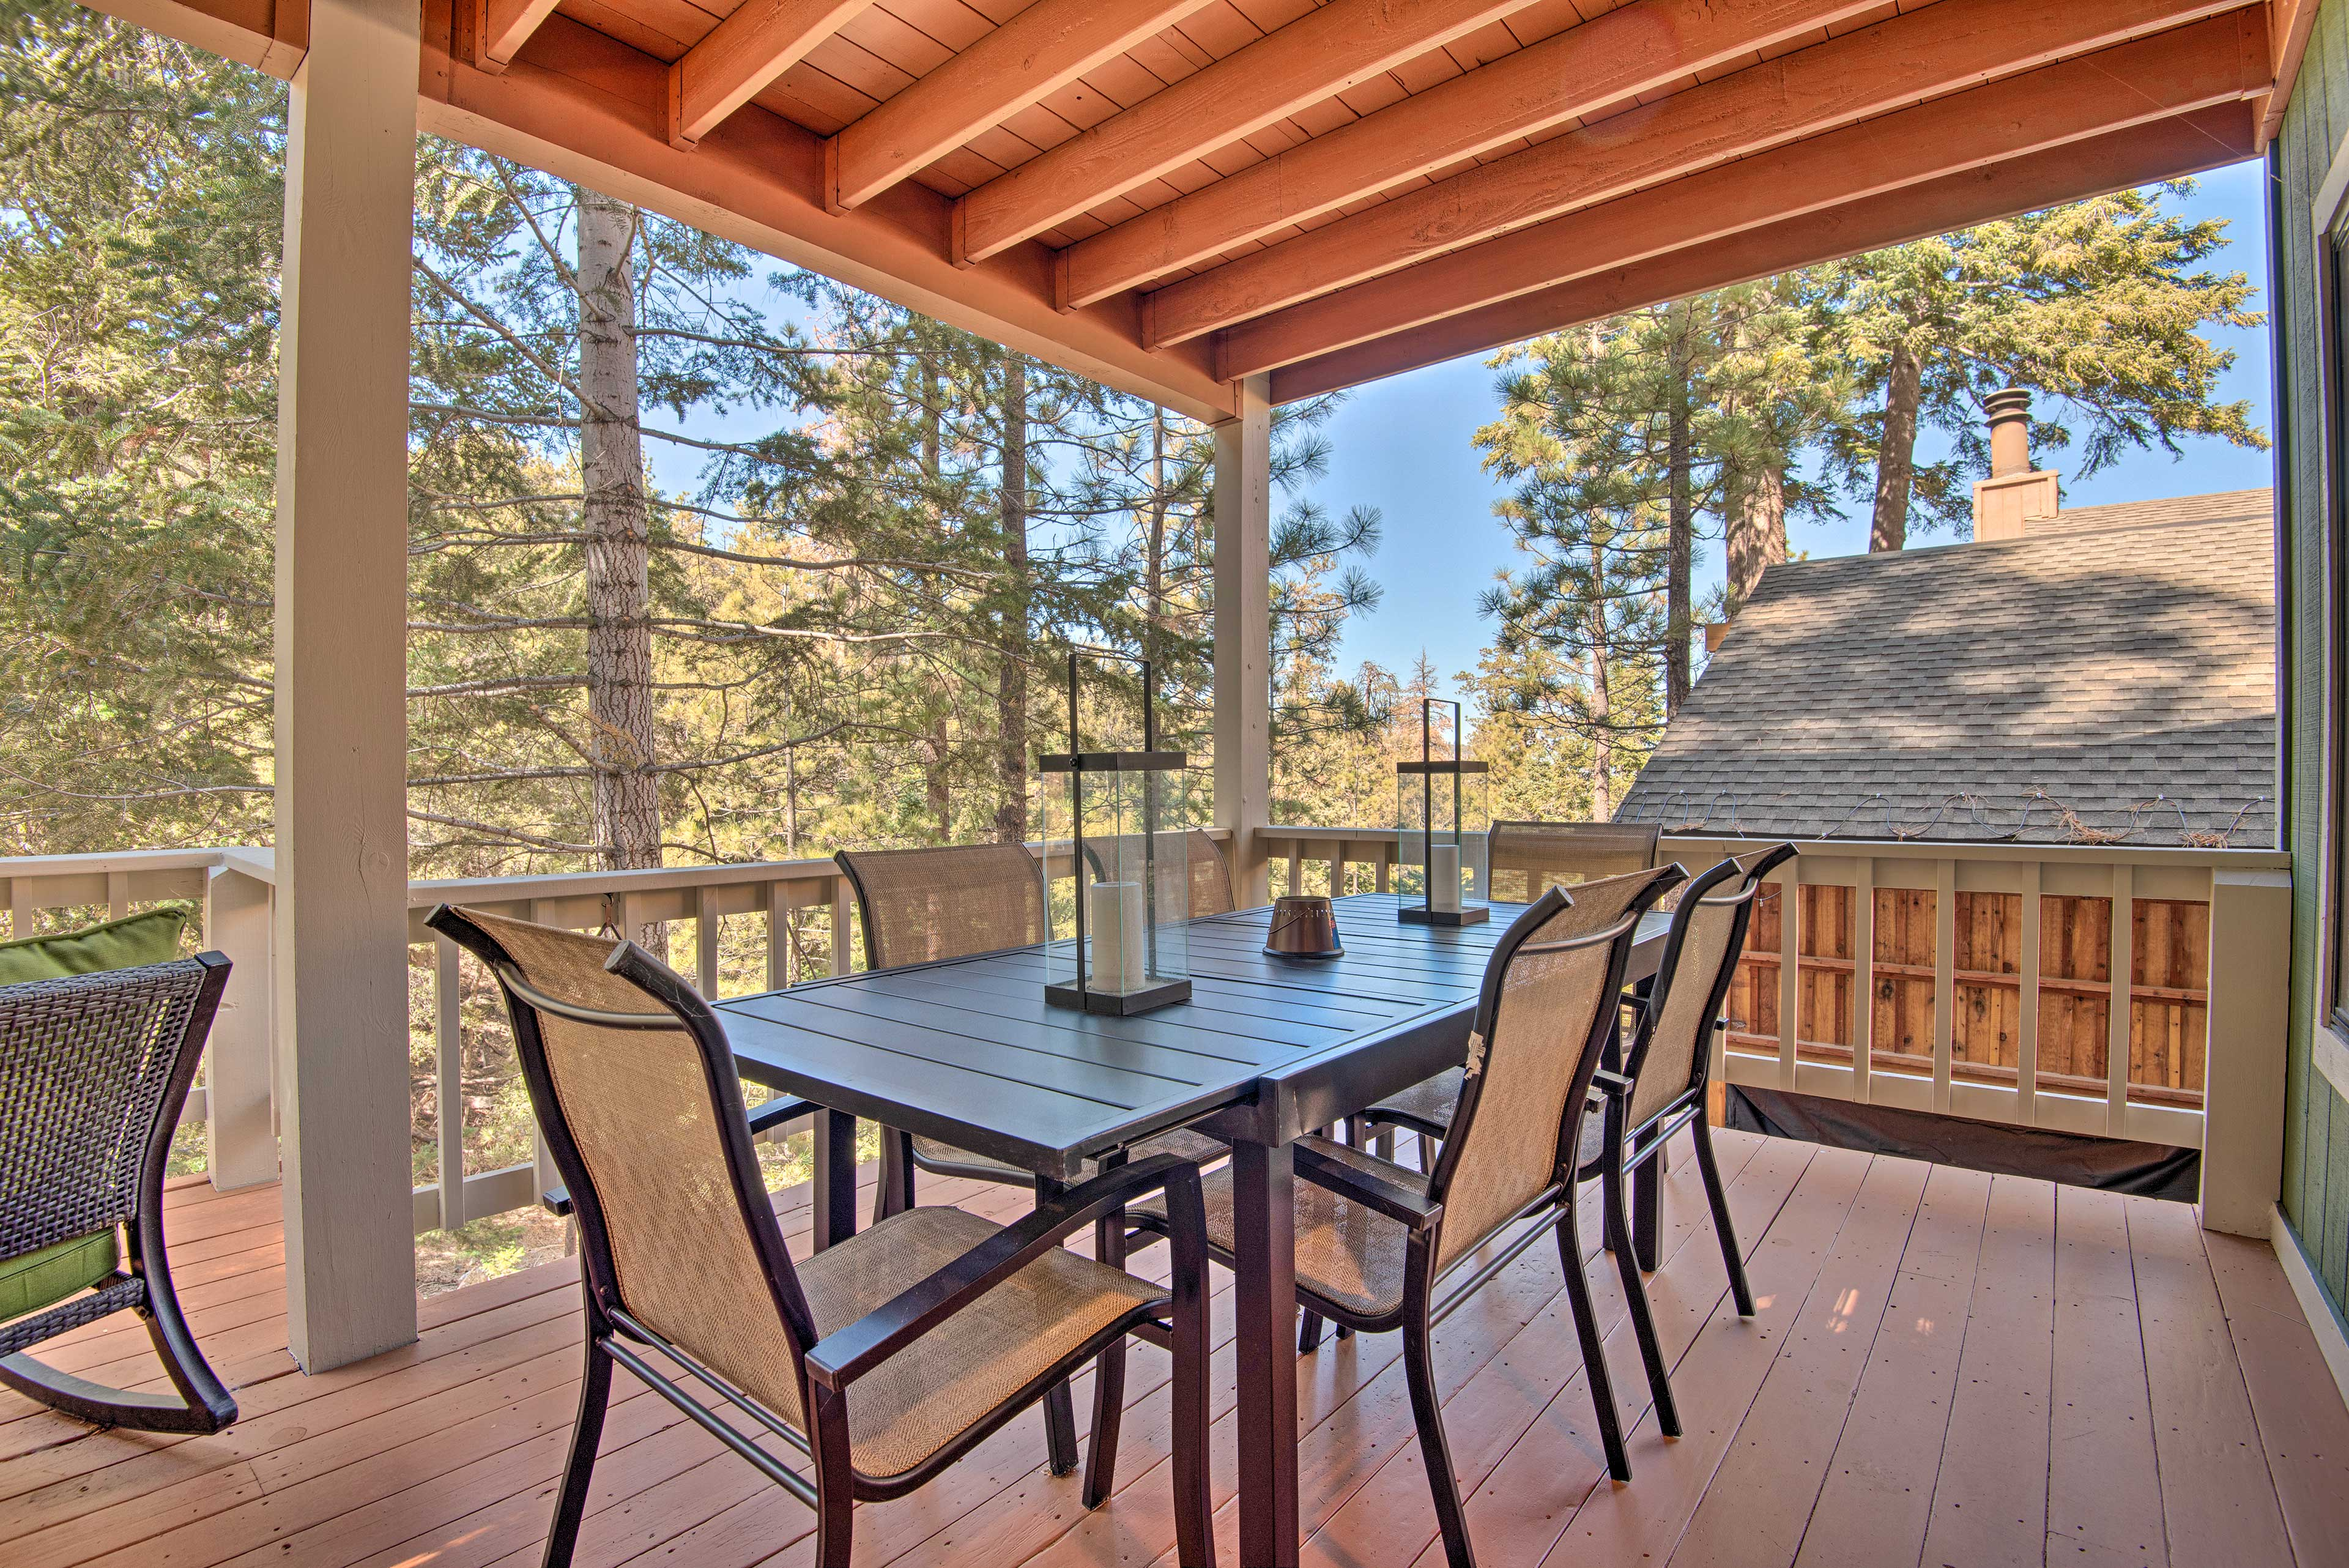 This 3 bedroom, 3-bath home also features a spacious wraparound deck.